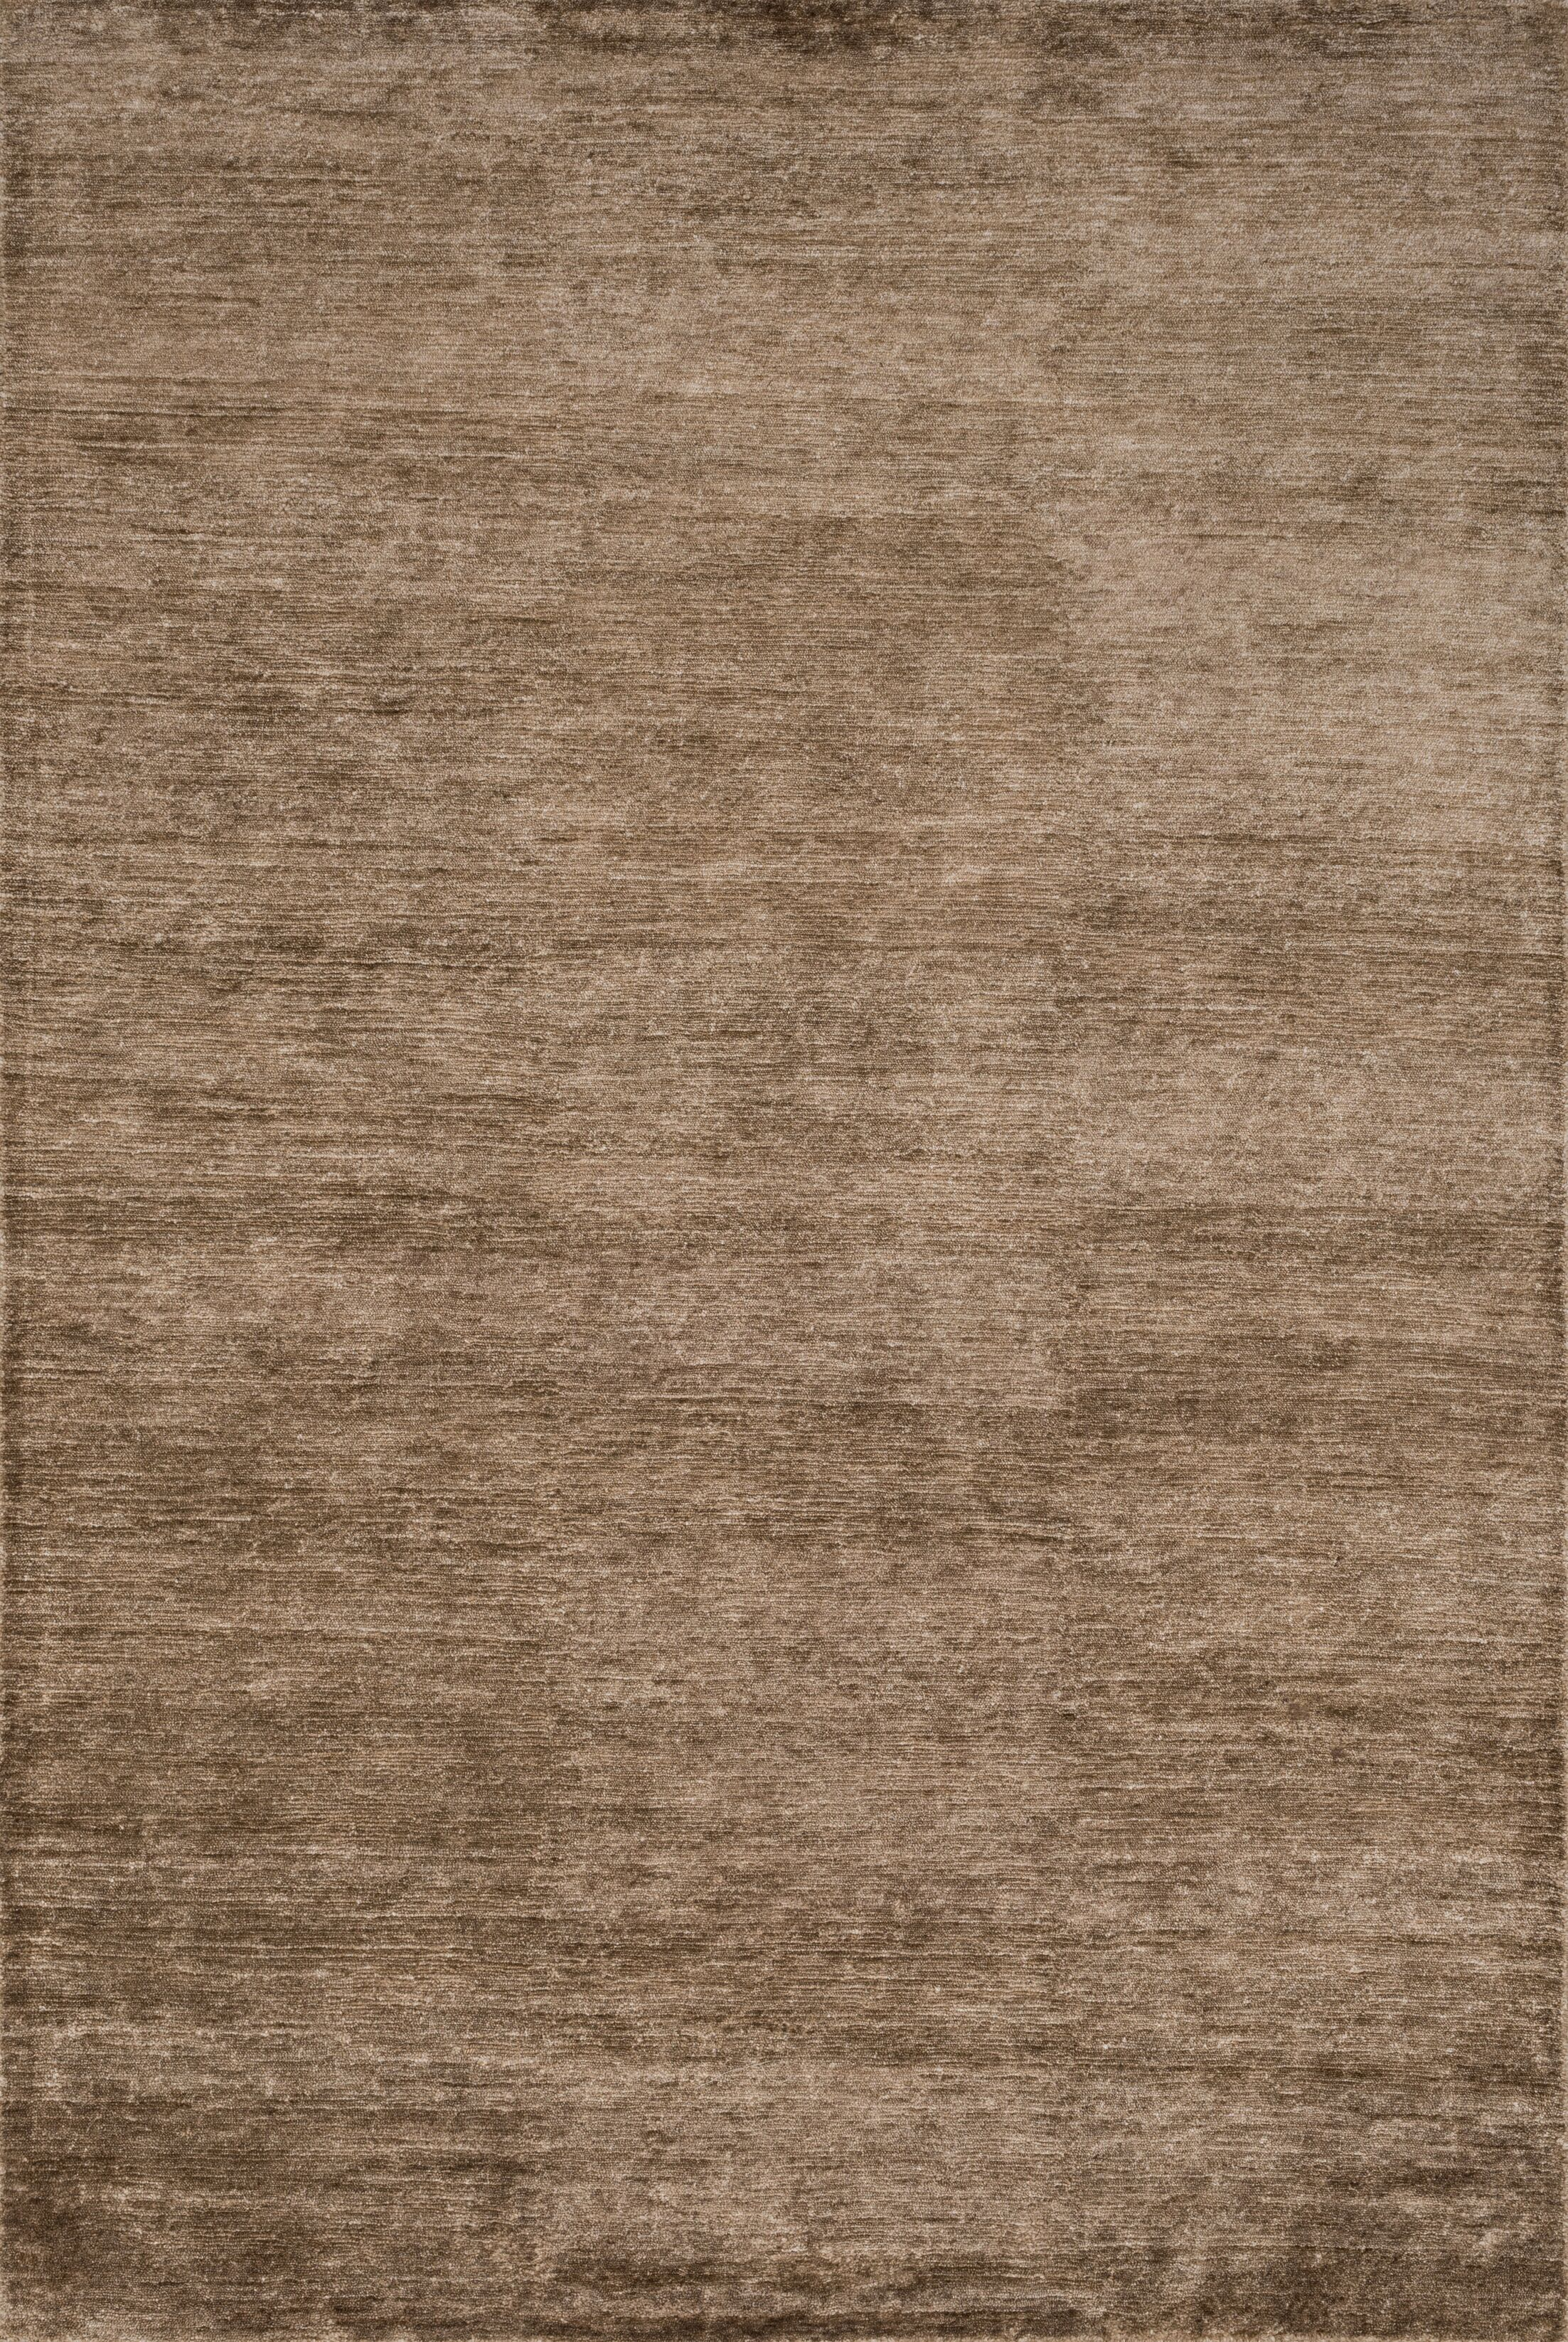 Hively Hand-Knotted Brown Area Rug Rug Size: Rectangle 8'6